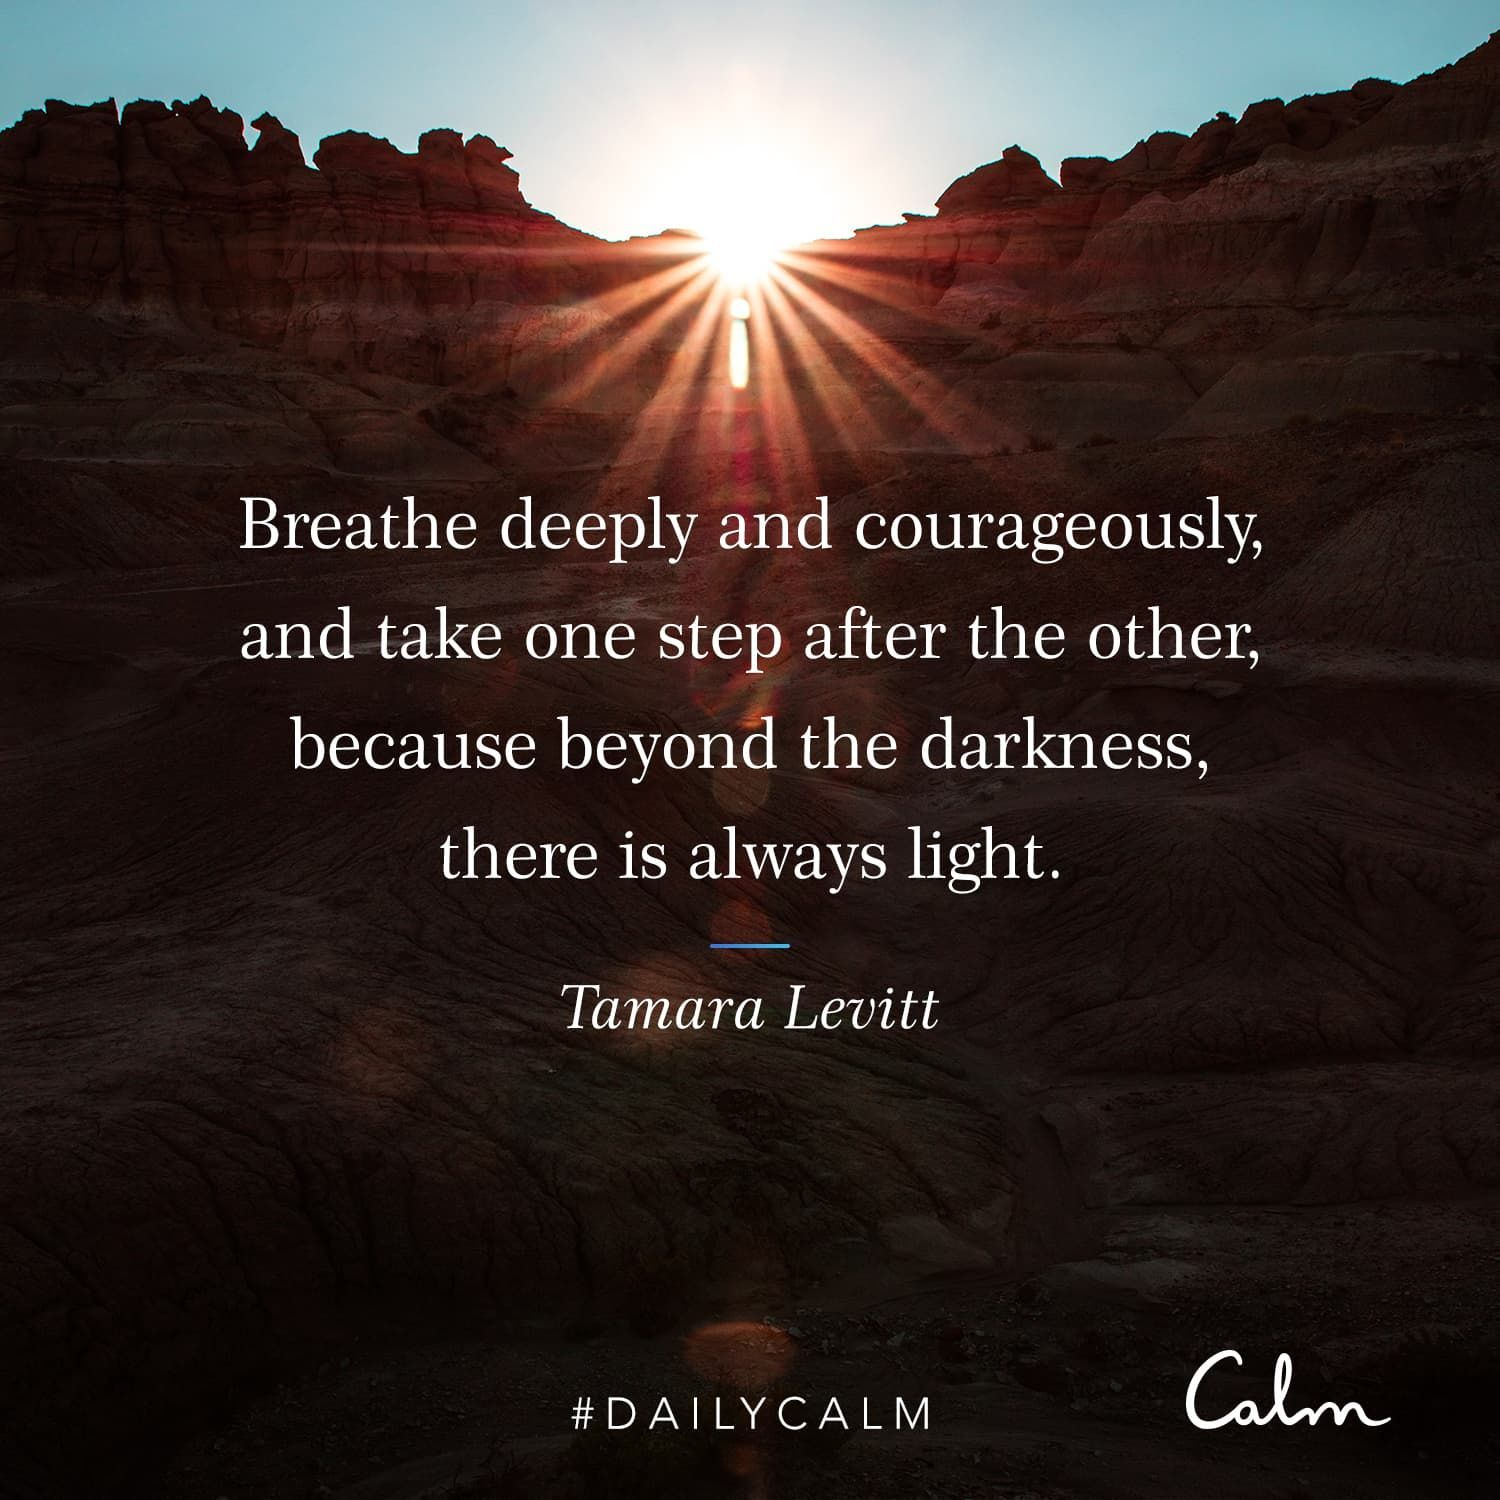 Daily Calm Quotes Breathe Deeply And Courageously And Take One